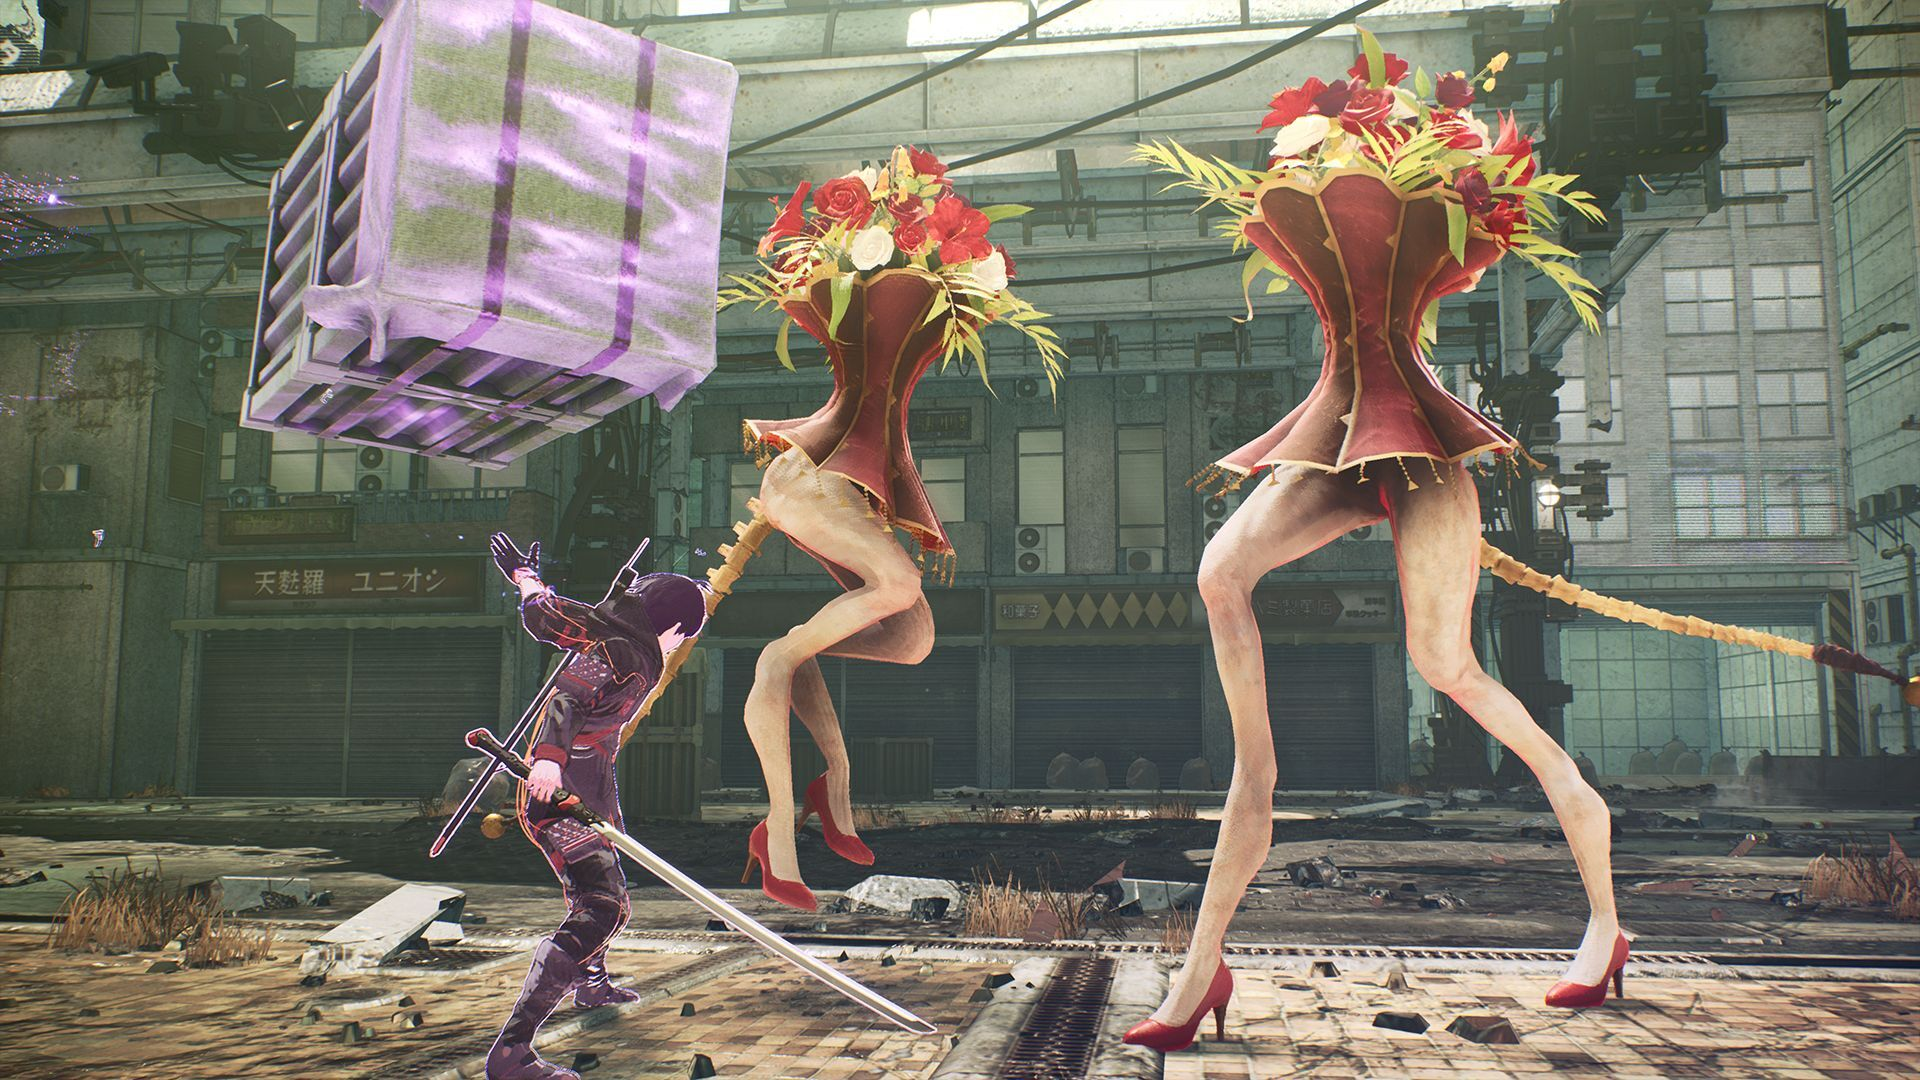 Scarlet Nexus Silent Hill 2 sexual sexualized iconography visuals villain bodies